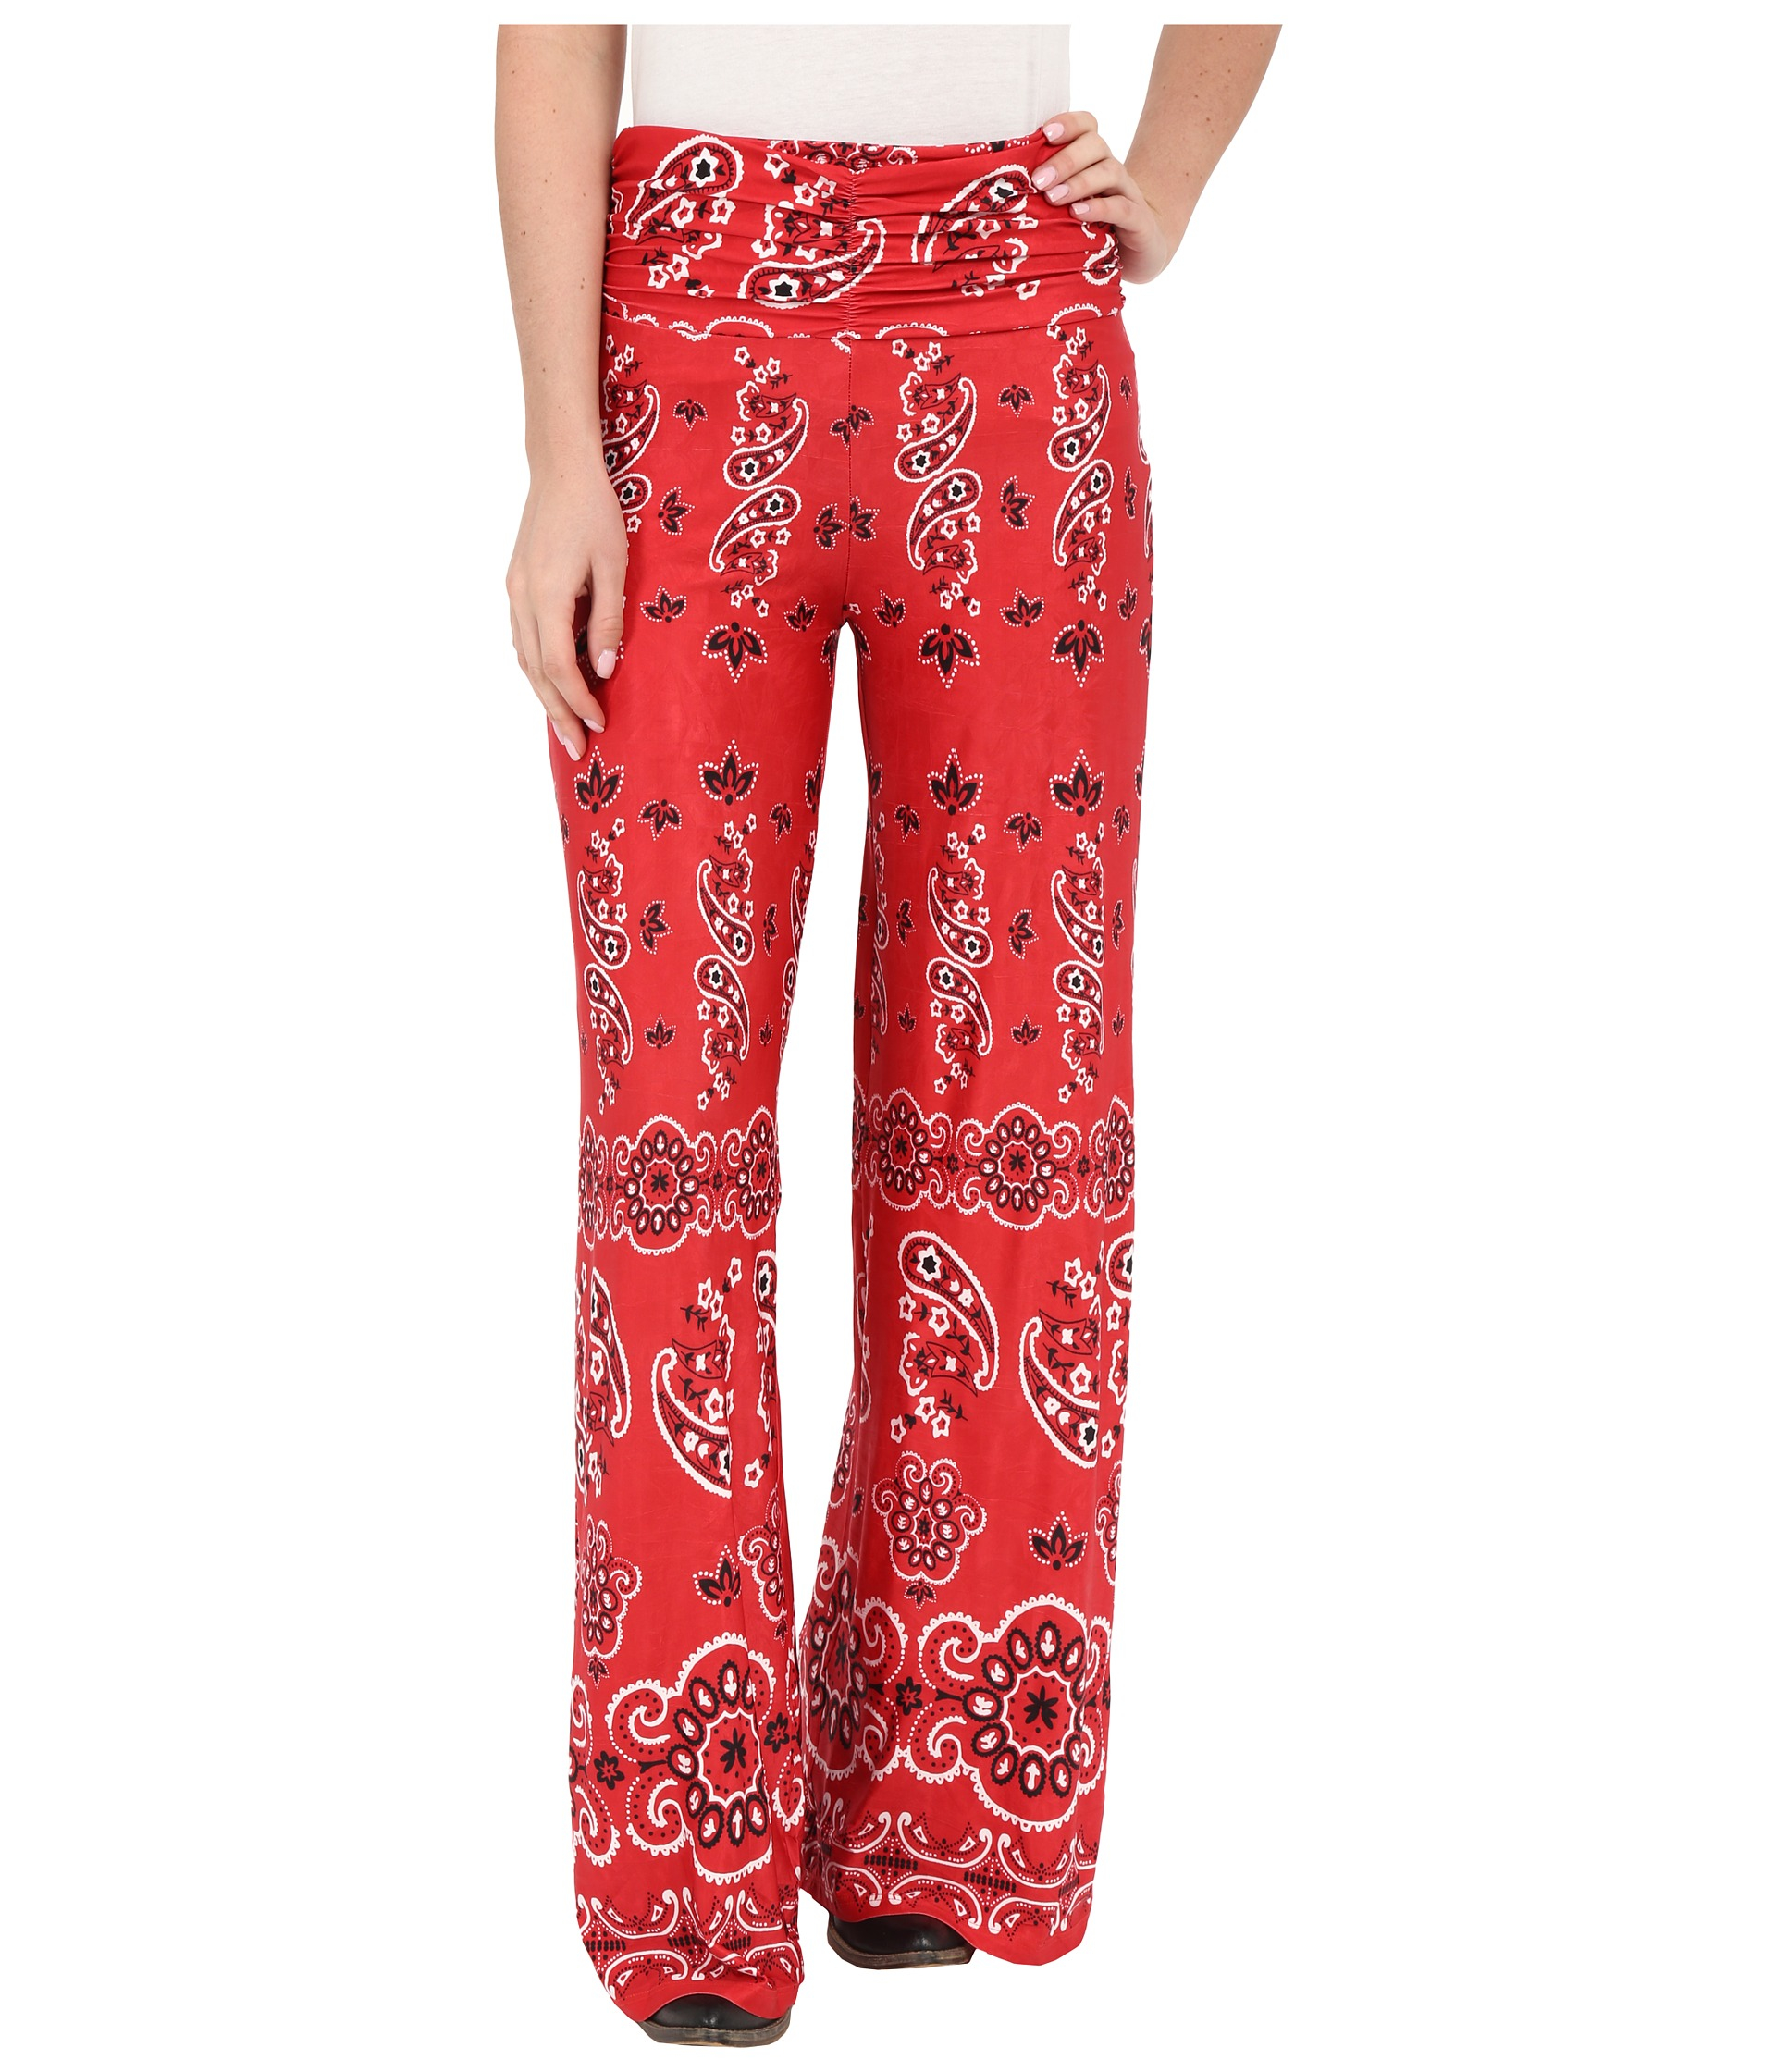 Find great deals on eBay for red bandana pants. Shop with confidence.